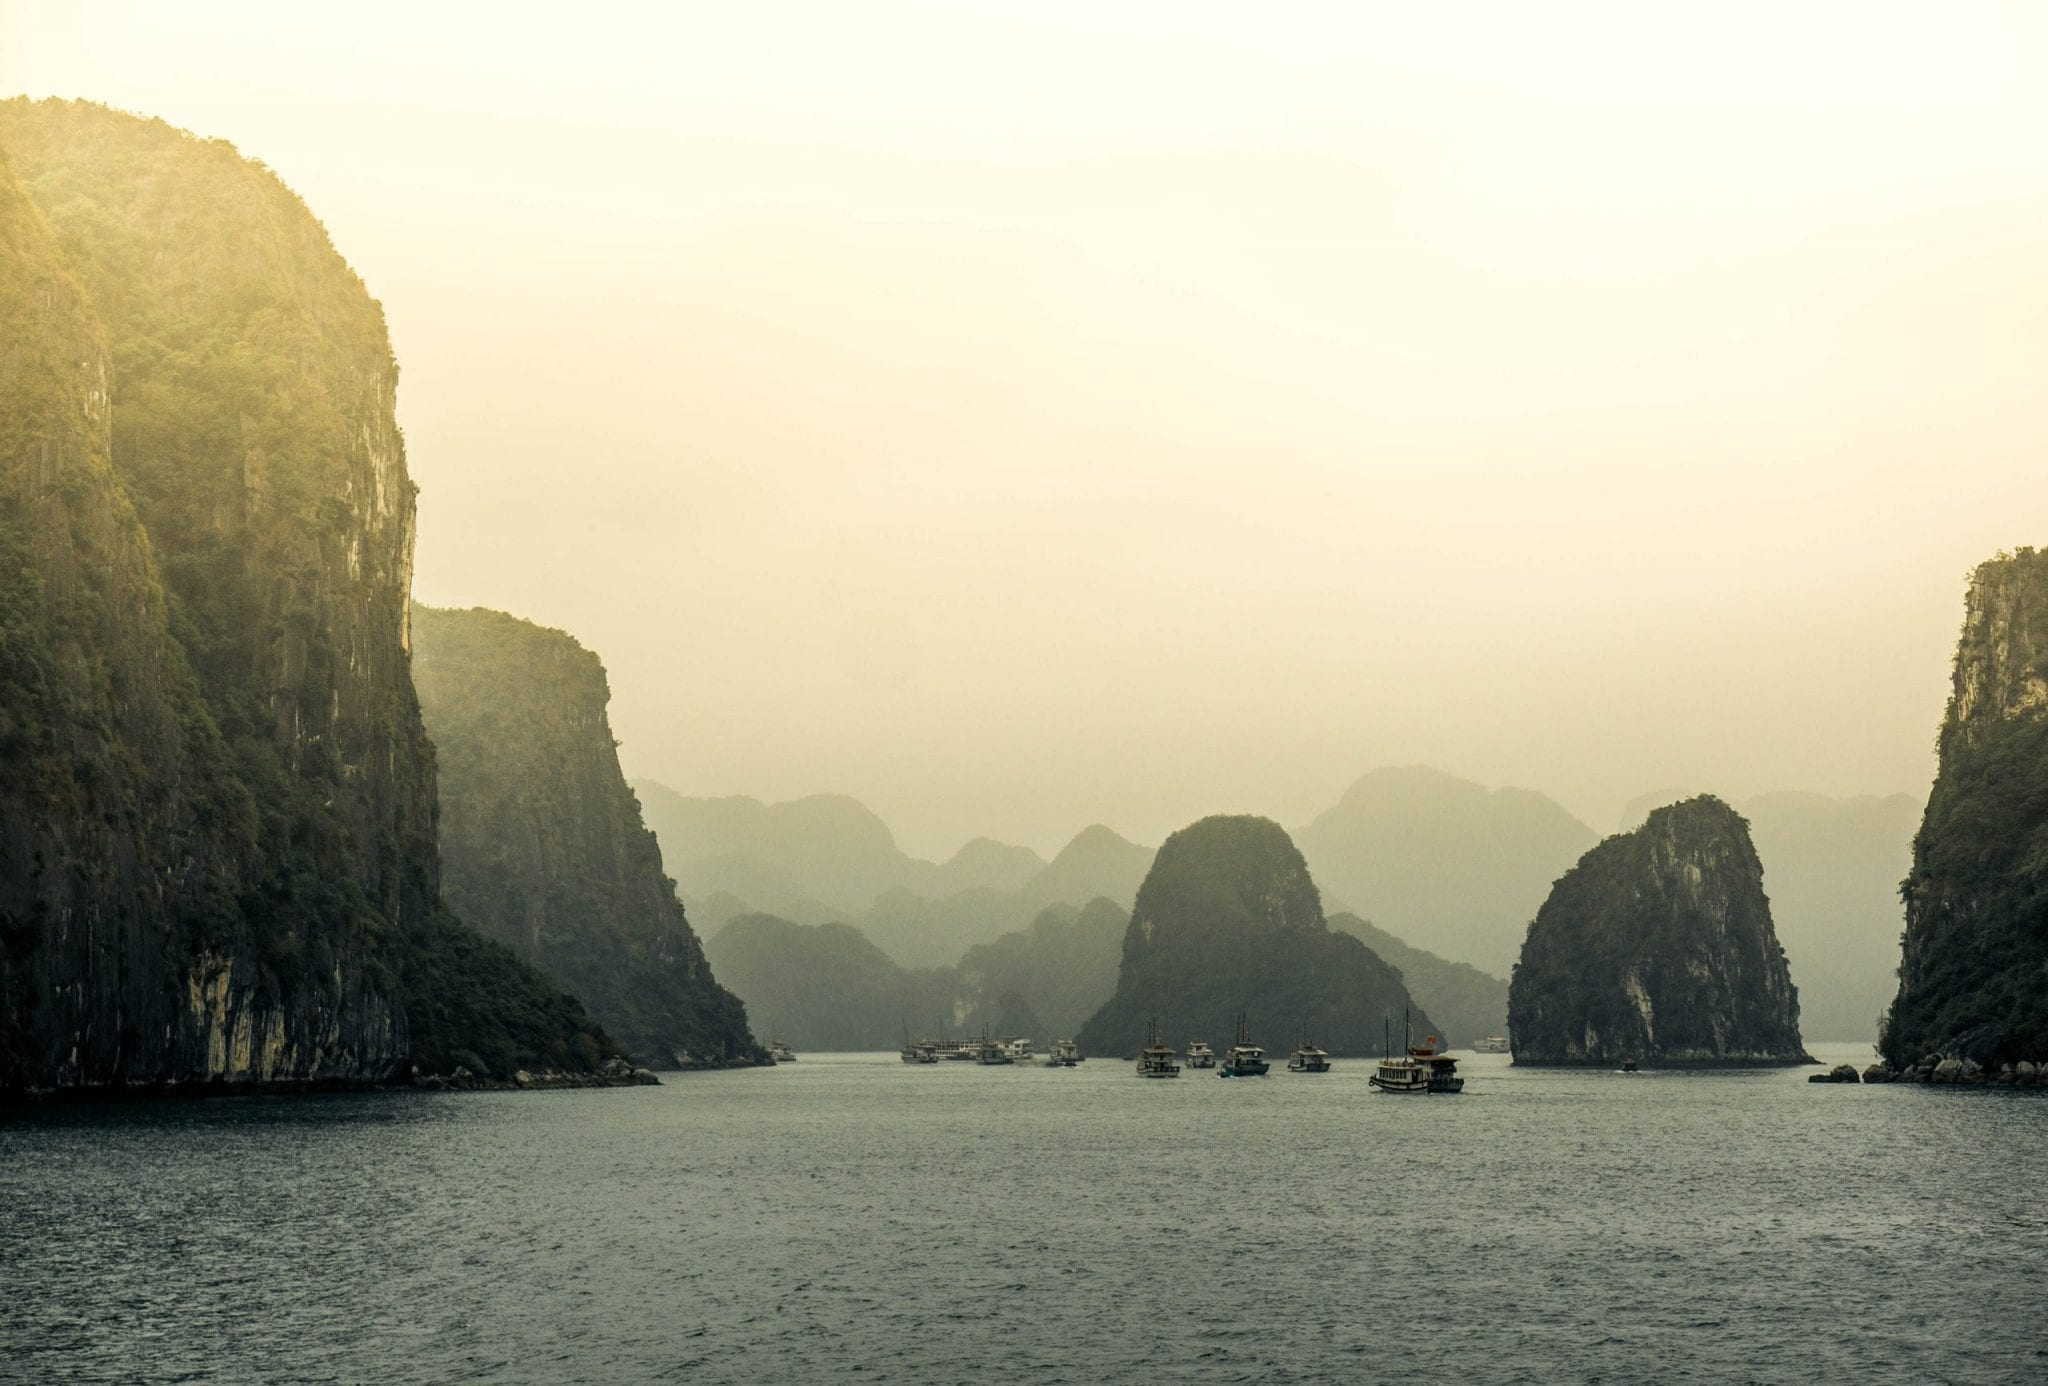 View of the sea and mountains during sunrise at Ha Long Bay in Vietnam